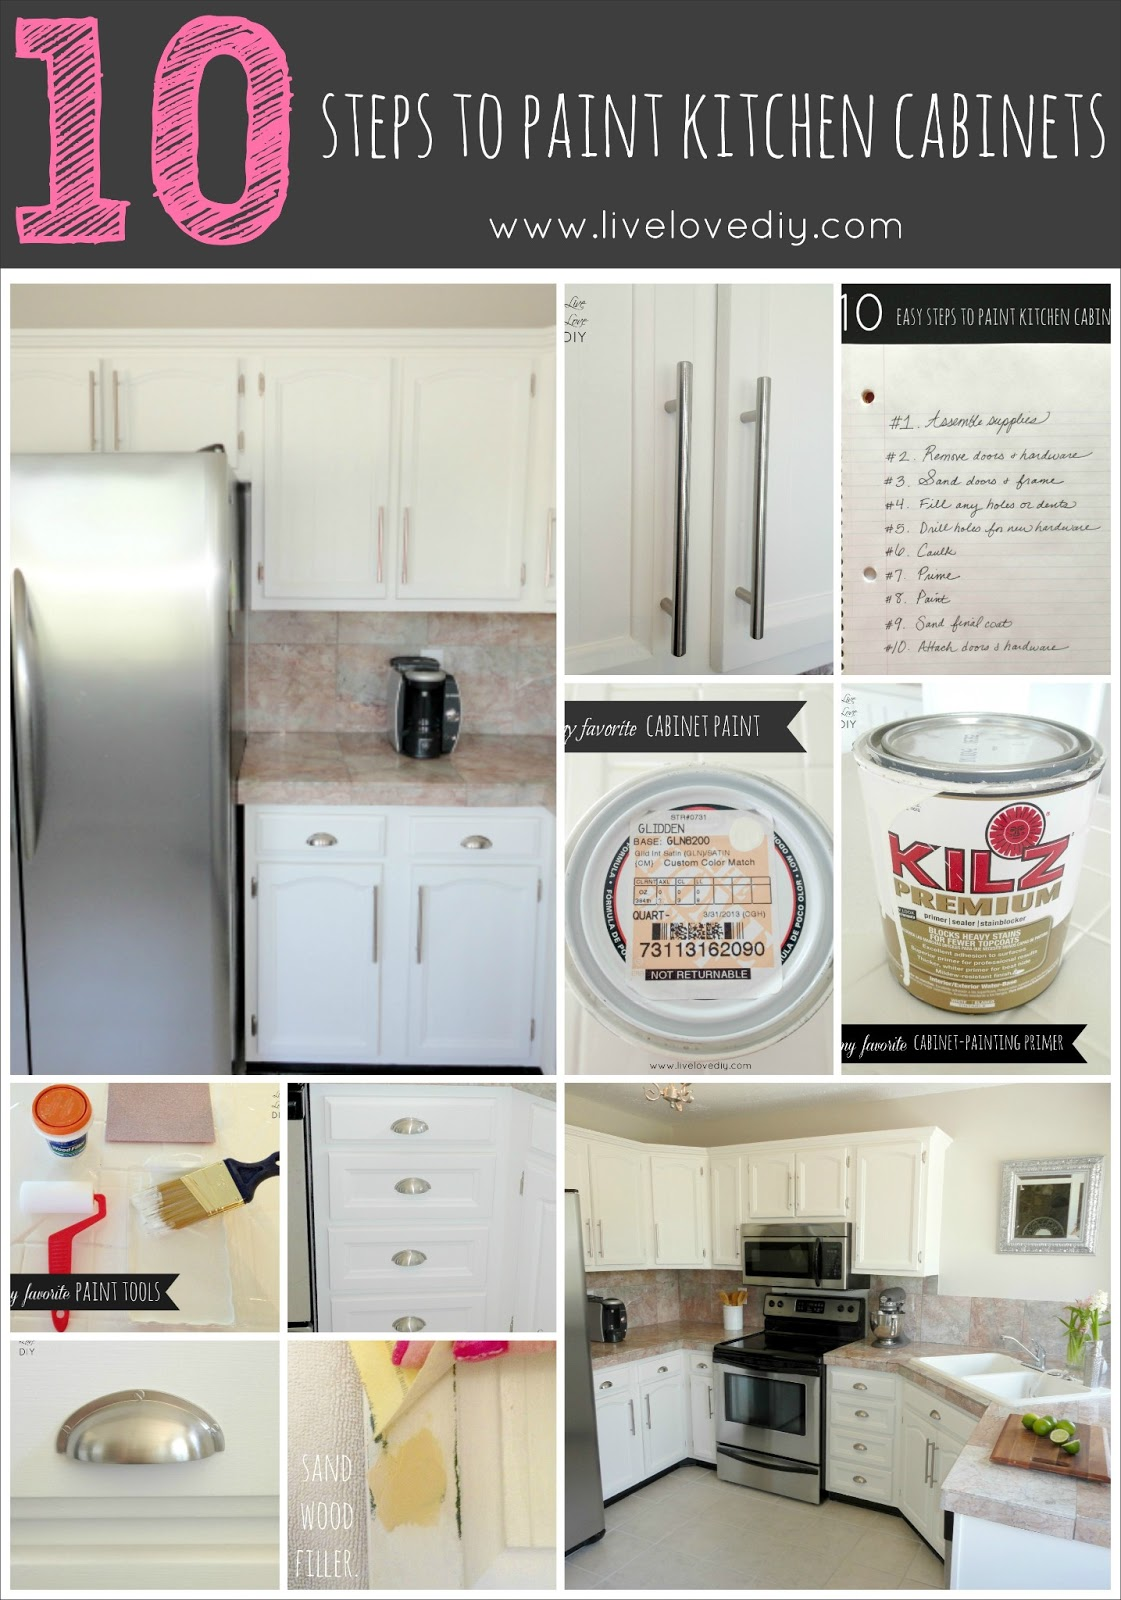 marvelous Painting Interior Of Kitchen Cabinets #6: How To Paint Kitchen Cabinets in 10 Easy Steps